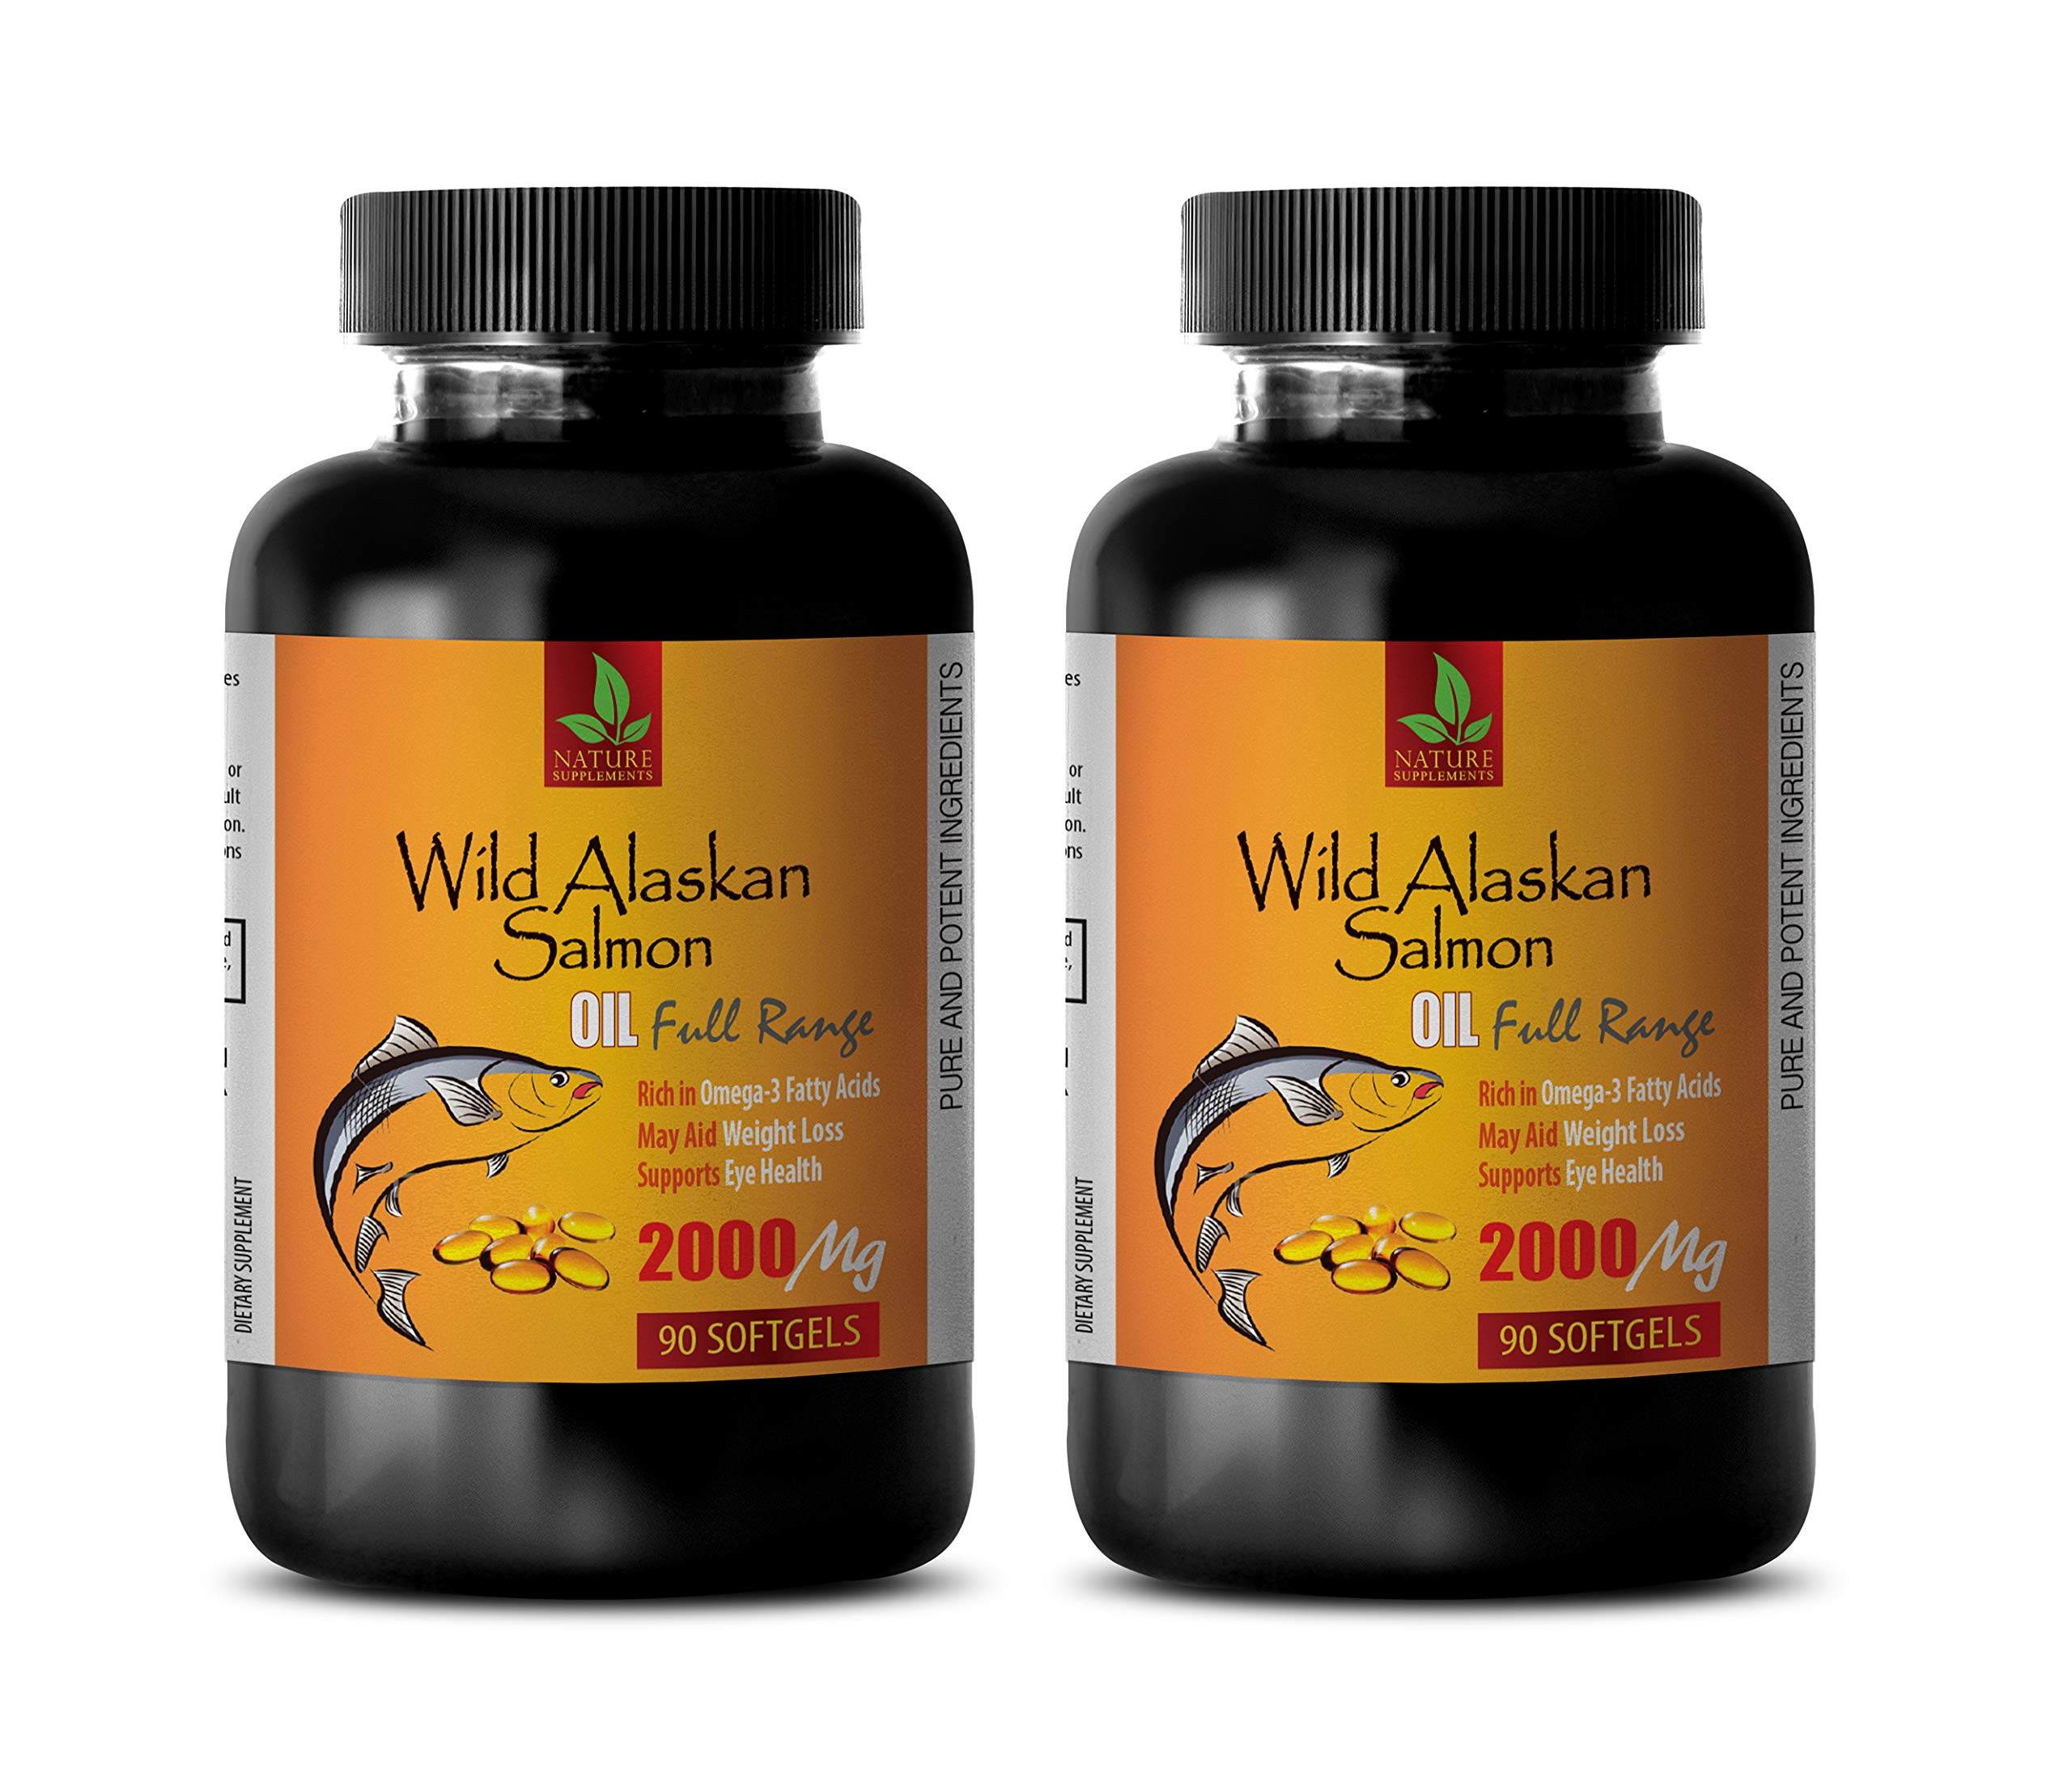 Brain Function and Focus Pills - Wild Alaskan Salmon Oil 2000 mg - Rich in Omega 3 Fatty ACIDS - Fish Oil with epa and dha - 2 Bottles 180 Softgels by NATURE SUPPLEMENTS